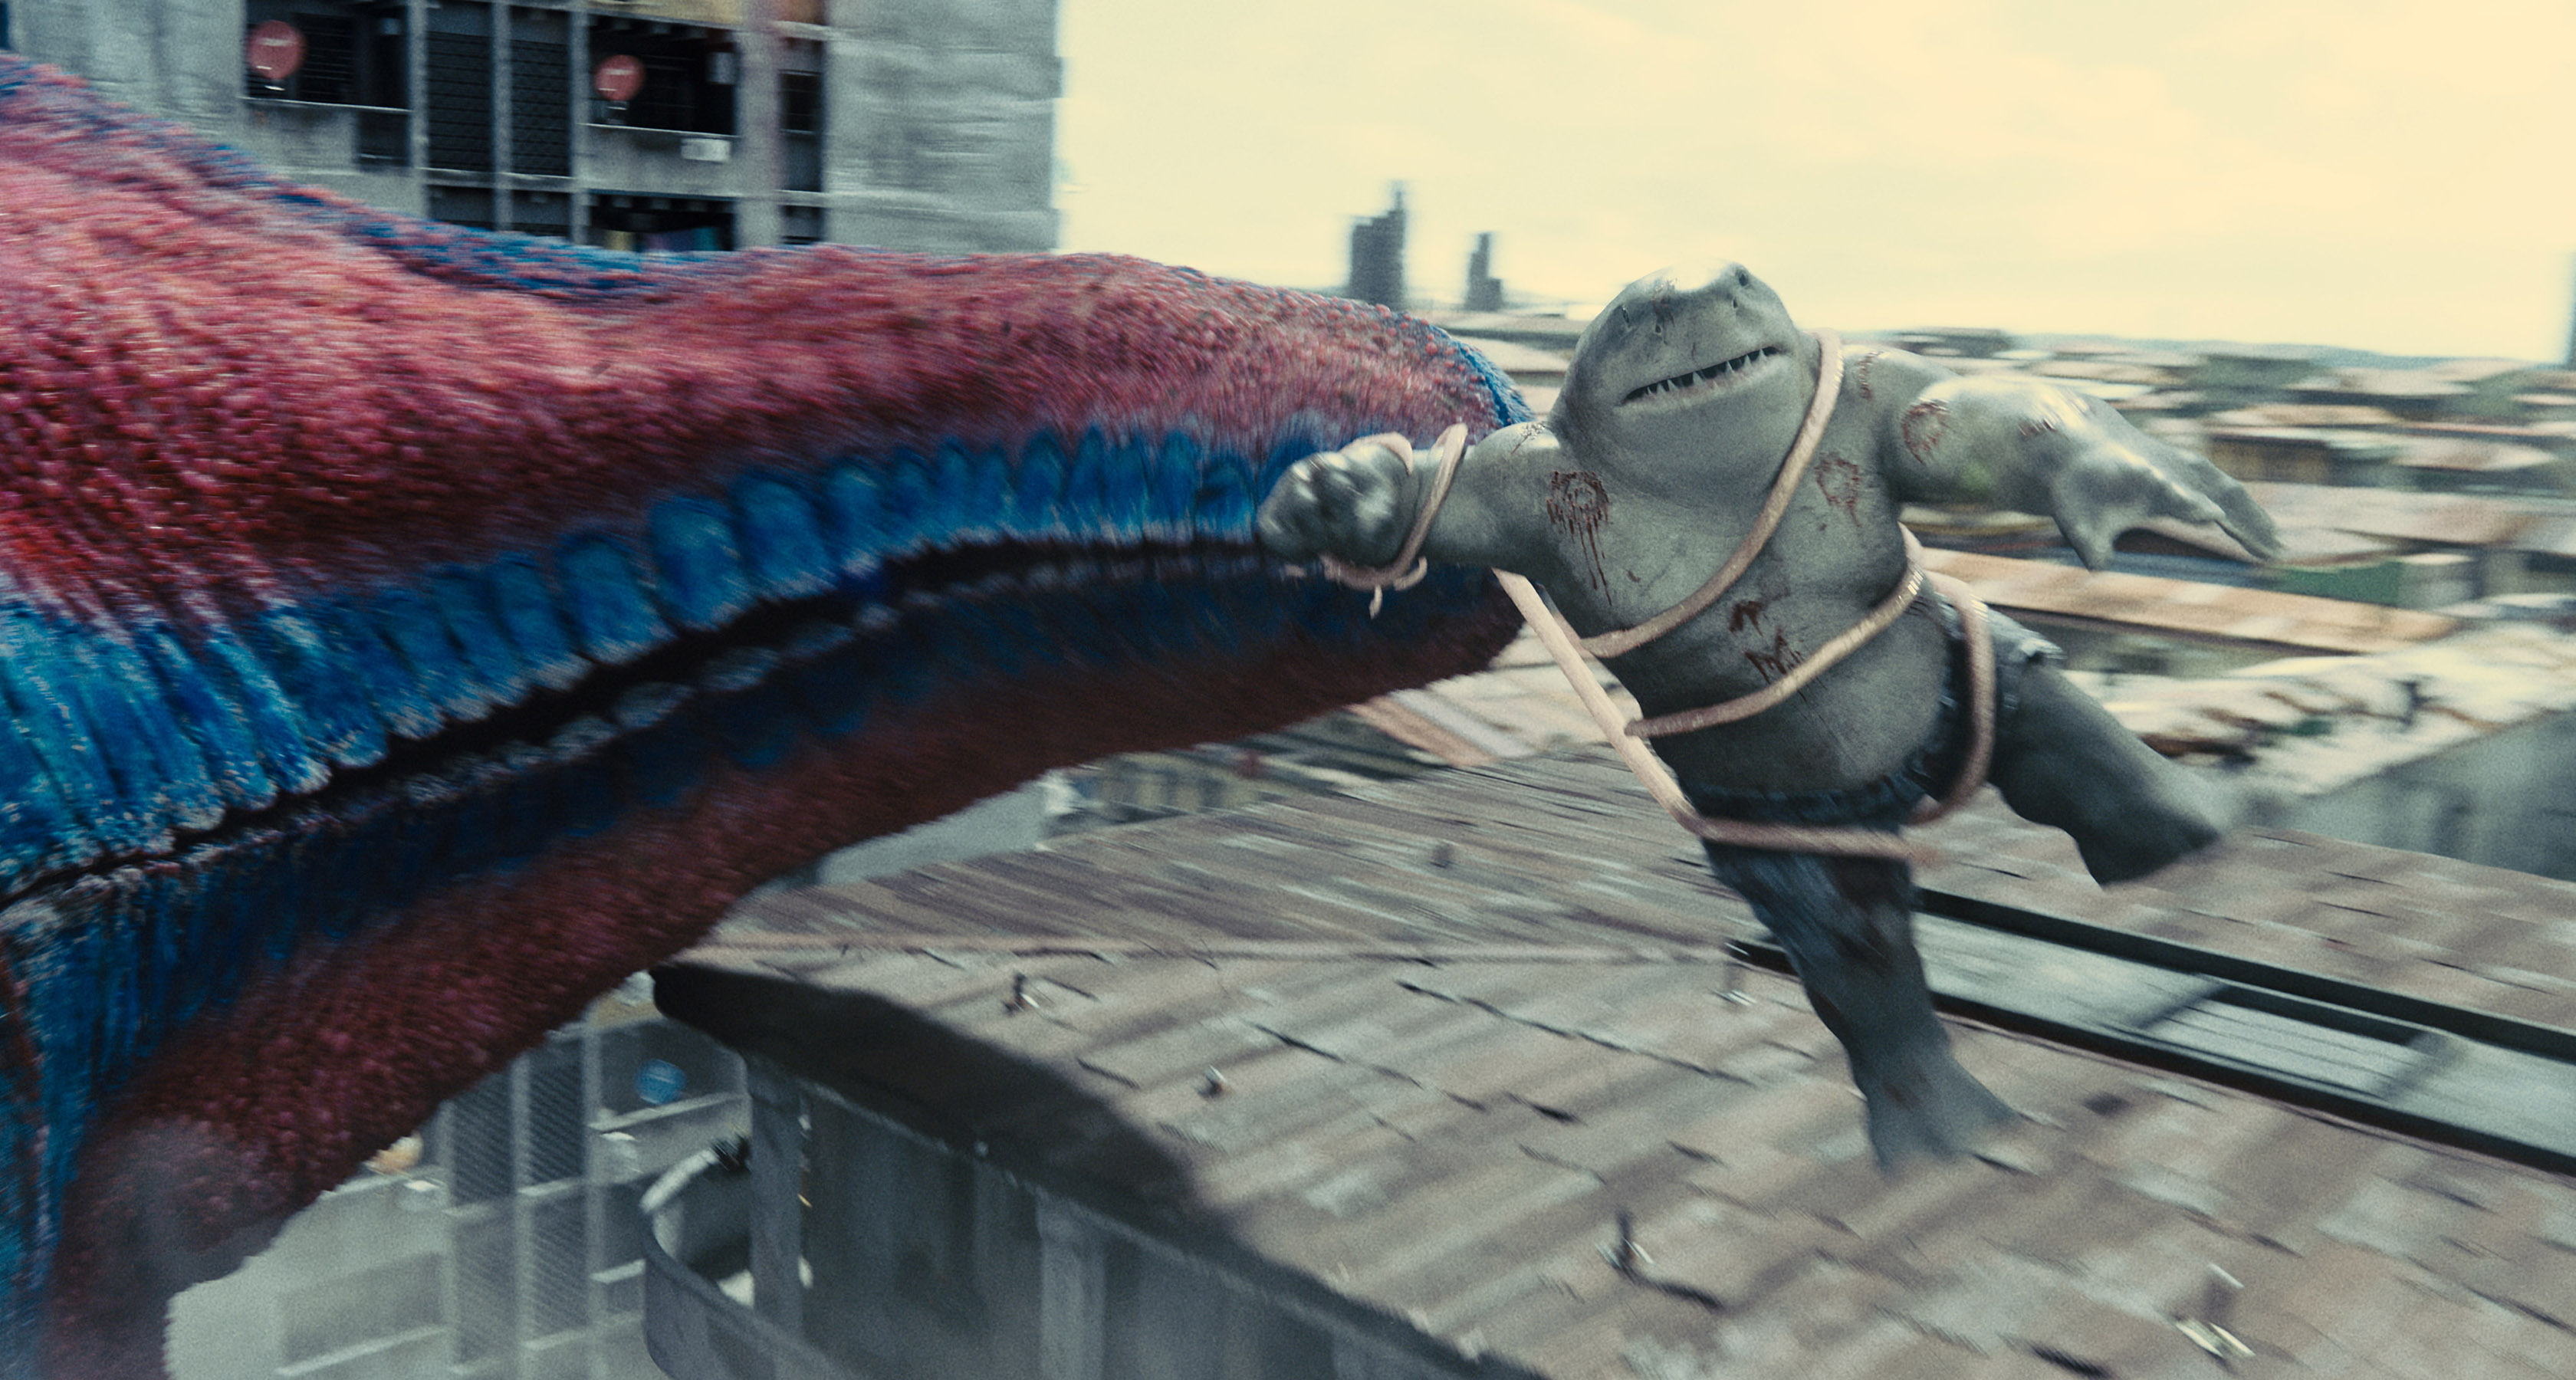 Starrp grabs King Shark in The Suicide Squad